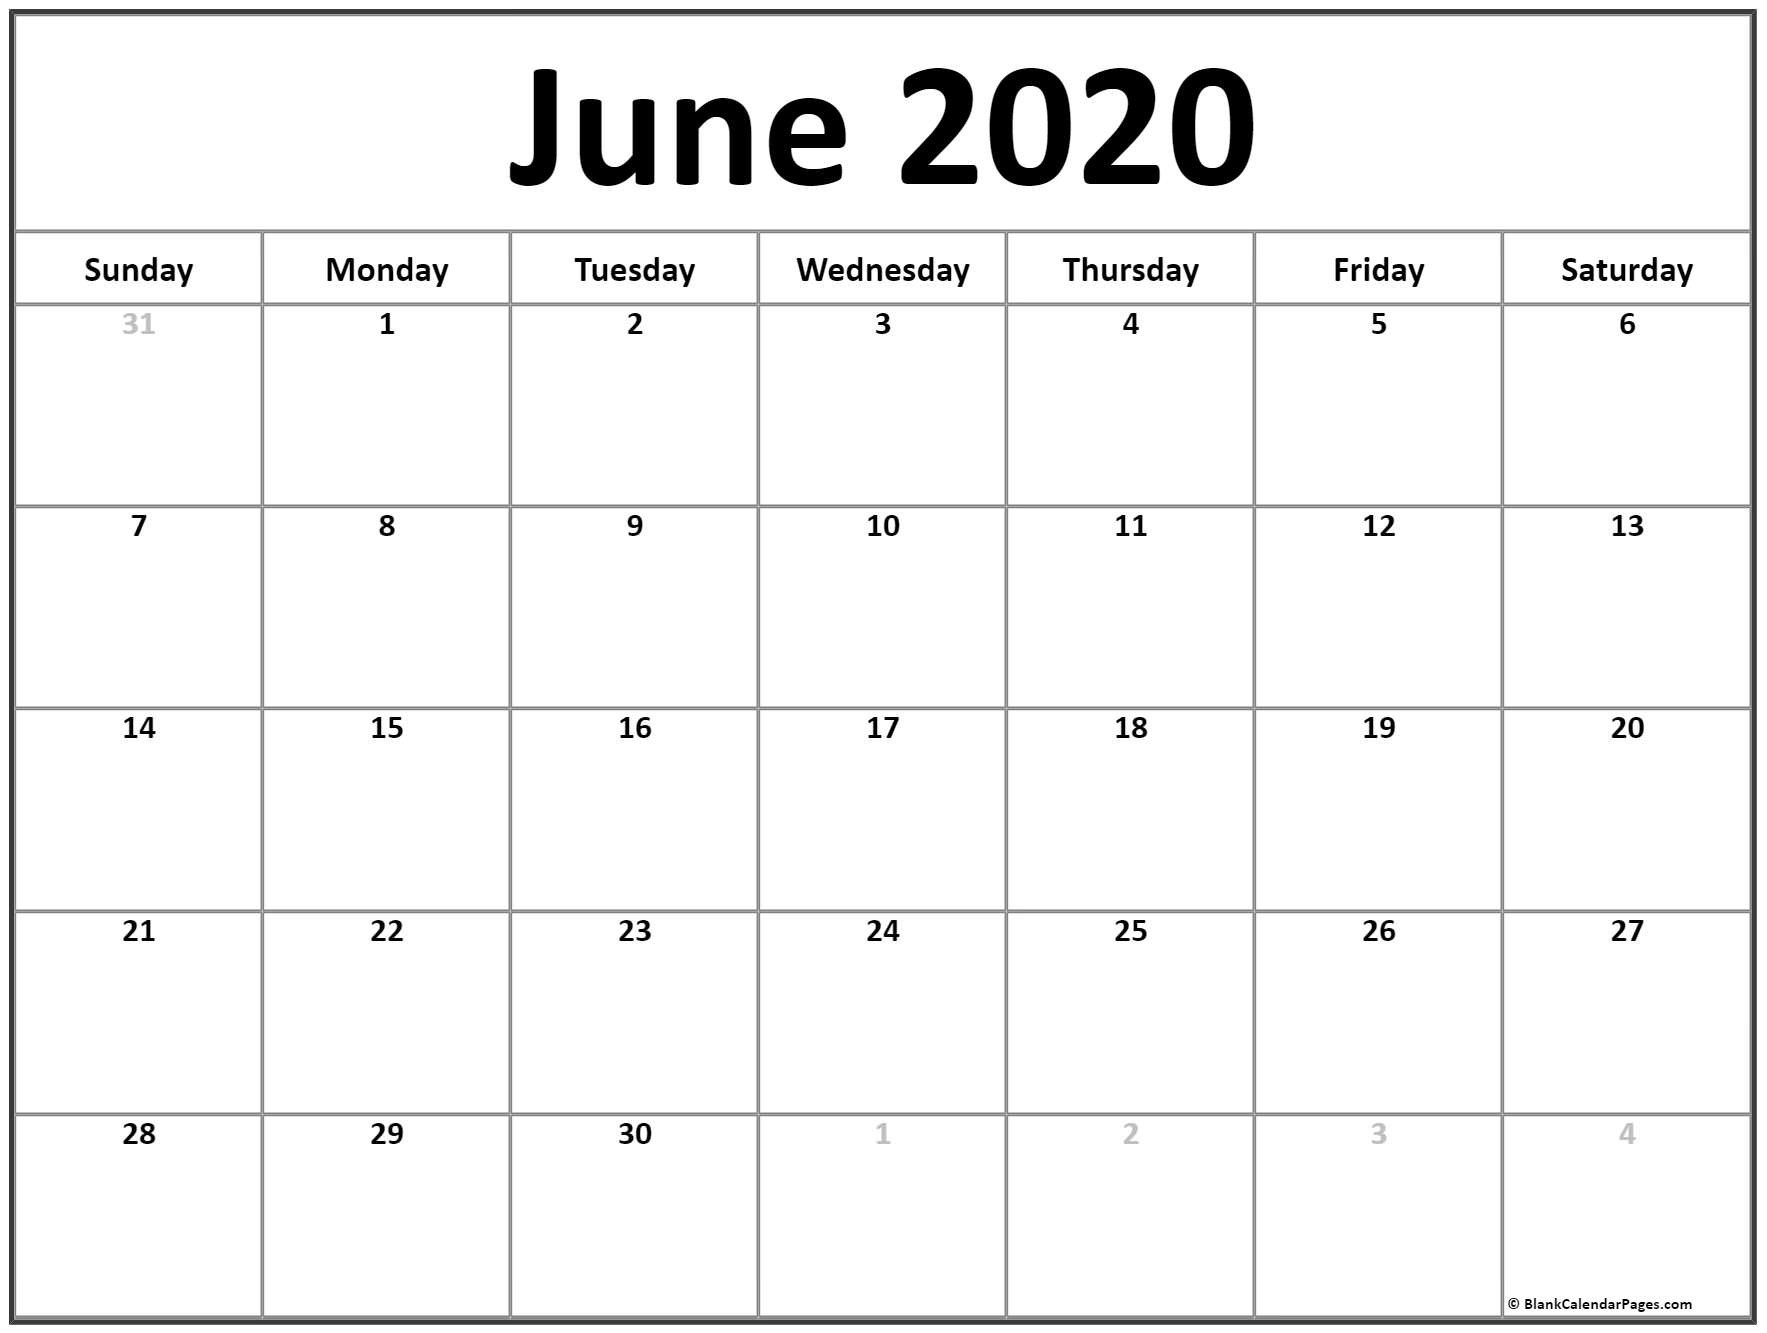 June 2020 Calendar | Free Printable Monthly Calendars-January Through June 2020 Calendar